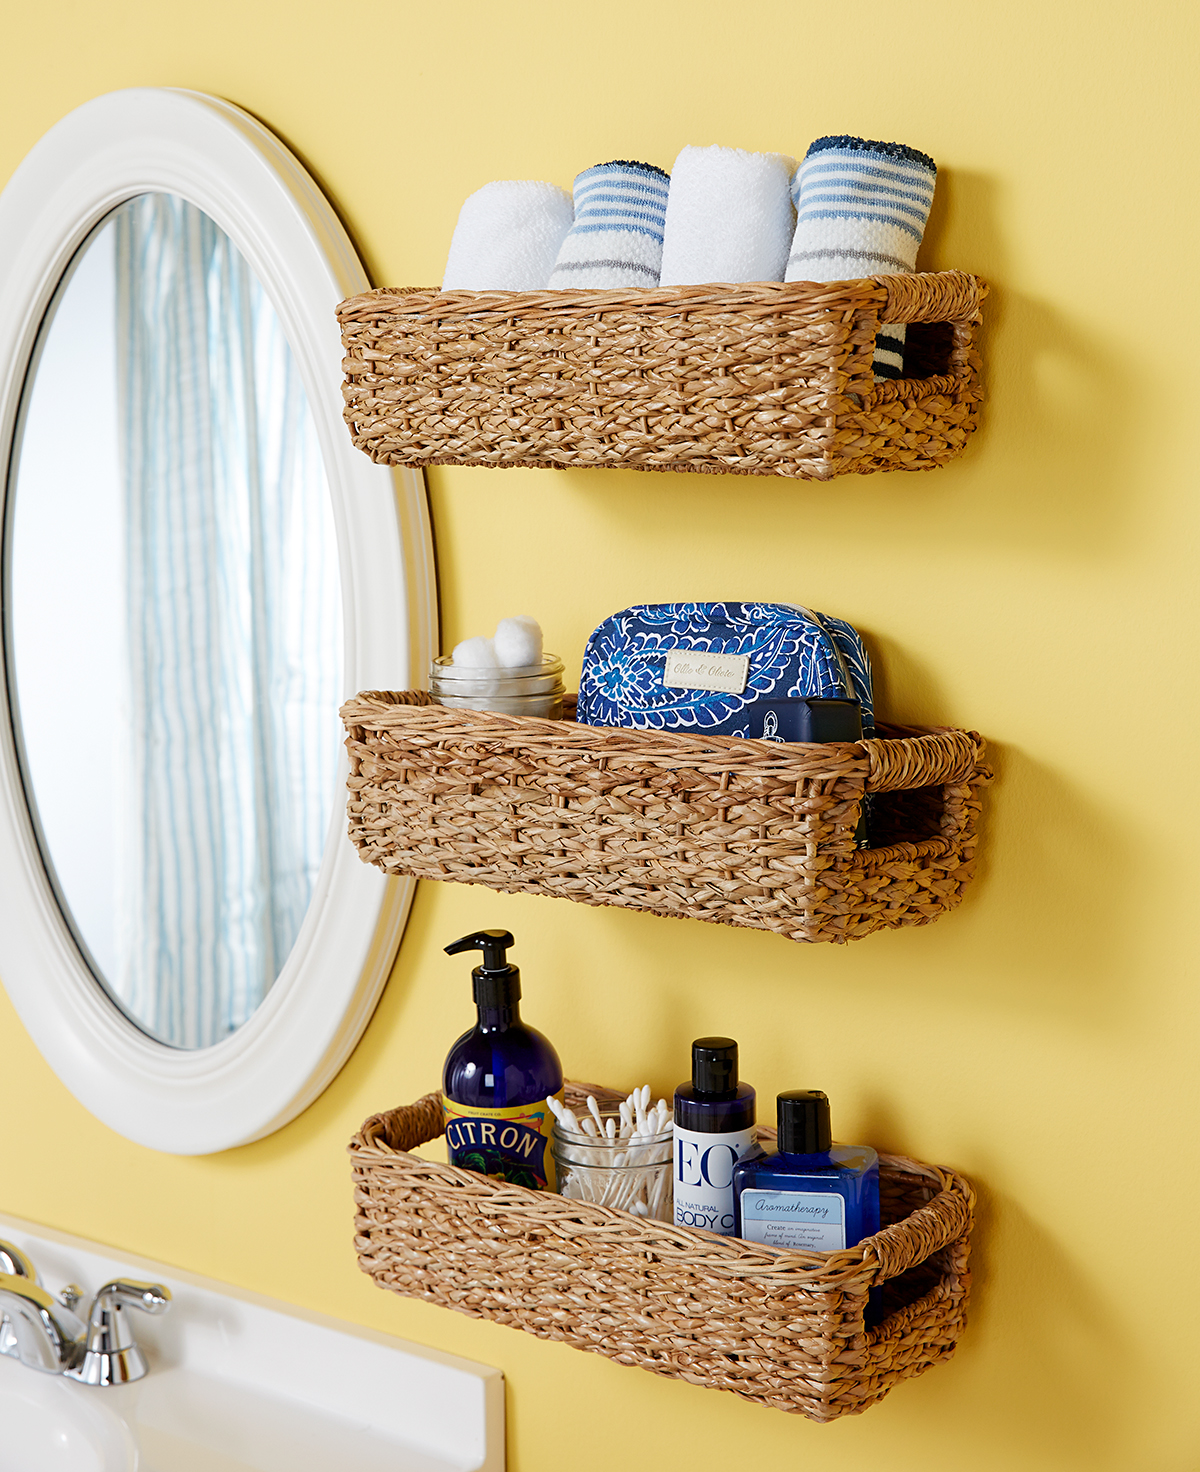 Hacks To Make The Most Of Your Tiny Bathroom